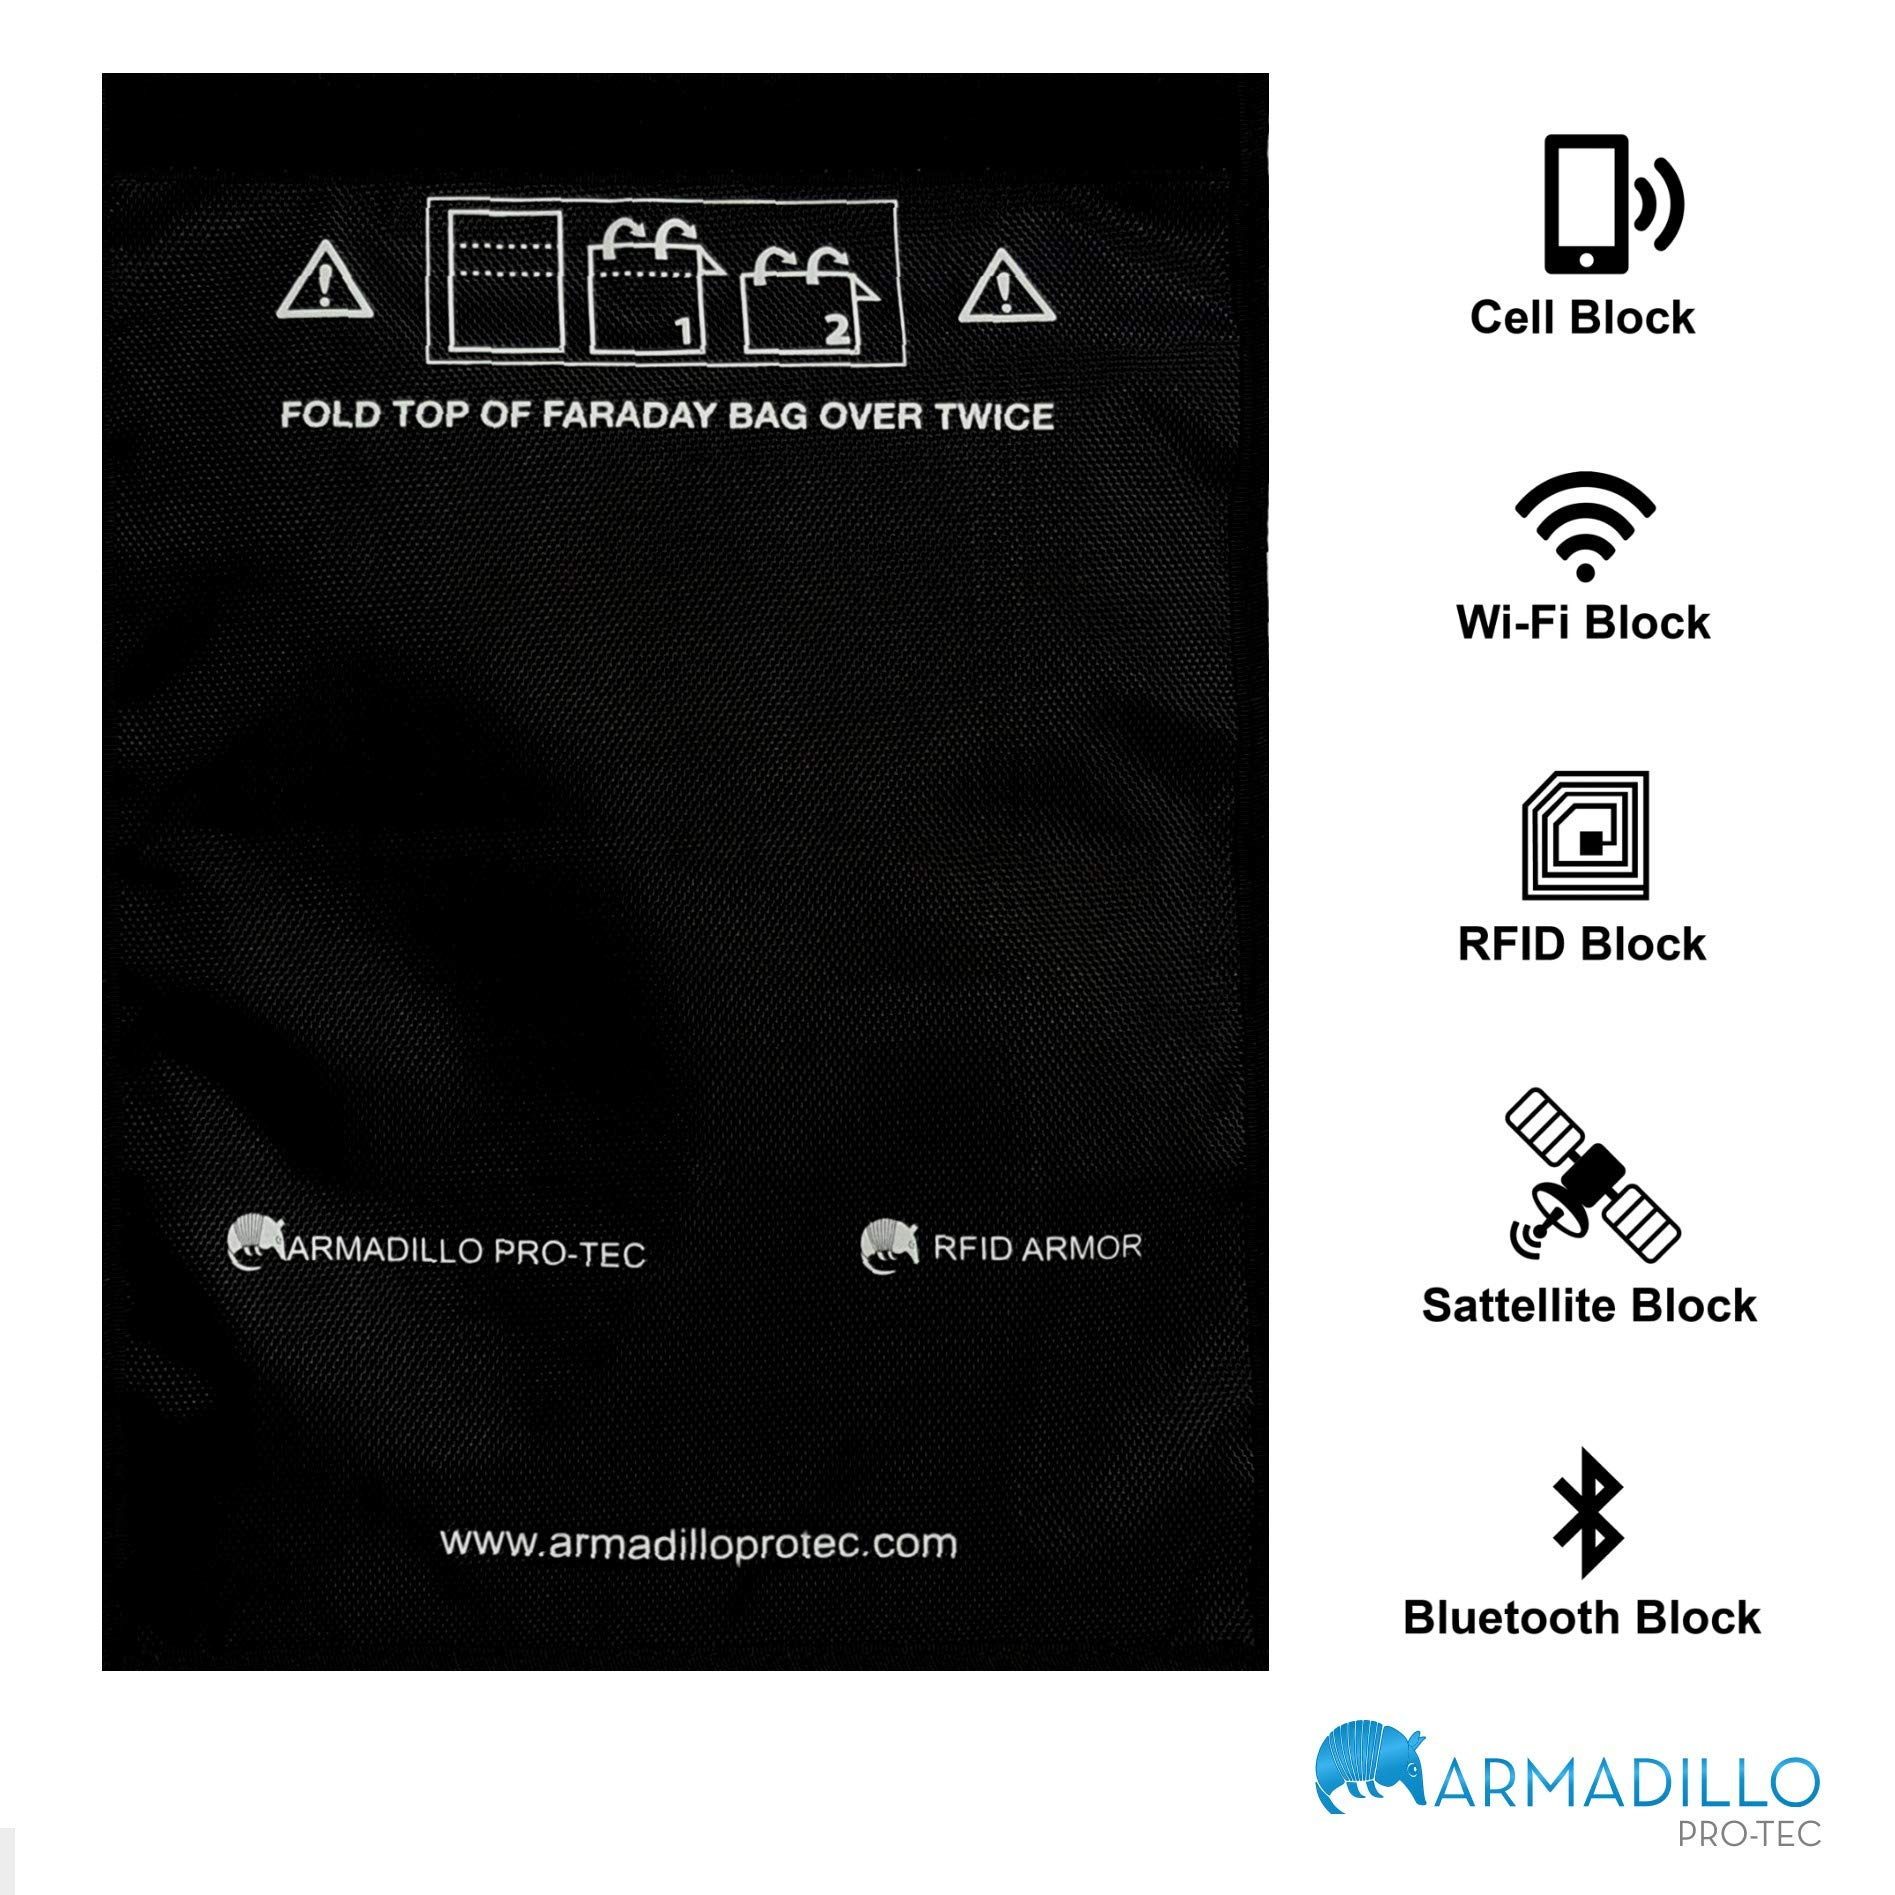 Armadillo Pro-Tec Faraday Bag for Tablets, Cell Phones, Car Key Fobs - Device Shielding for Law Enforcement, Military, Executive Privacy, Travel & Data Protection, Anti-Hacking & Anti-Tracking